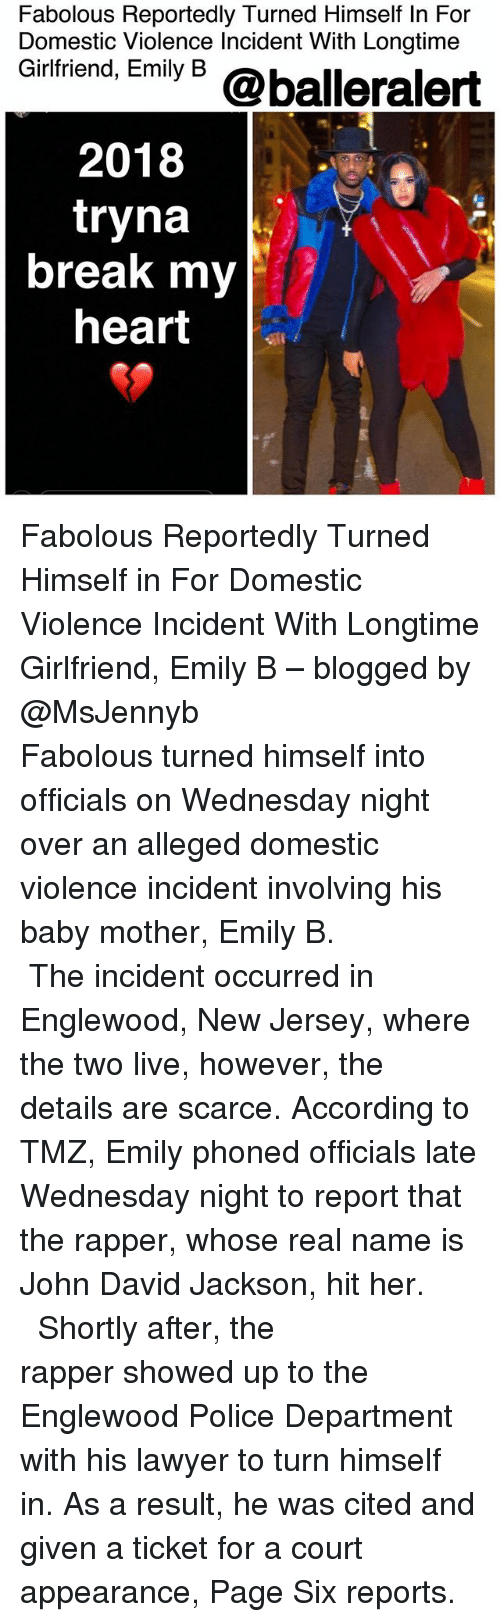 Wednesday Night: Fabolous Reportedly Turned Himself In For  Domestic Violence Incident With Longtime  Gintriend, Emiy 6 @balleralert  2018  tryna  break my  heart Fabolous Reportedly Turned Himself in For Domestic Violence Incident With Longtime Girlfriend, Emily B – blogged by @MsJennyb ⠀⠀⠀⠀⠀⠀⠀⠀⠀ ⠀⠀⠀⠀⠀⠀⠀⠀⠀ Fabolous turned himself into officials on Wednesday night over an alleged domestic violence incident involving his baby mother, Emily B. ⠀⠀⠀⠀⠀⠀⠀⠀⠀ ⠀⠀⠀⠀⠀⠀⠀⠀⠀ The incident occurred in Englewood, New Jersey, where the two live, however, the details are scarce. According to TMZ, Emily phoned officials late Wednesday night to report that the rapper, whose real name is John David Jackson, hit her. ⠀⠀⠀⠀⠀⠀⠀⠀⠀ ⠀⠀⠀⠀⠀⠀⠀⠀⠀ Shortly after, the rapper showed up to the Englewood Police Department with his lawyer to turn himself in. As a result, he was cited and given a ticket for a court appearance, Page Six reports.